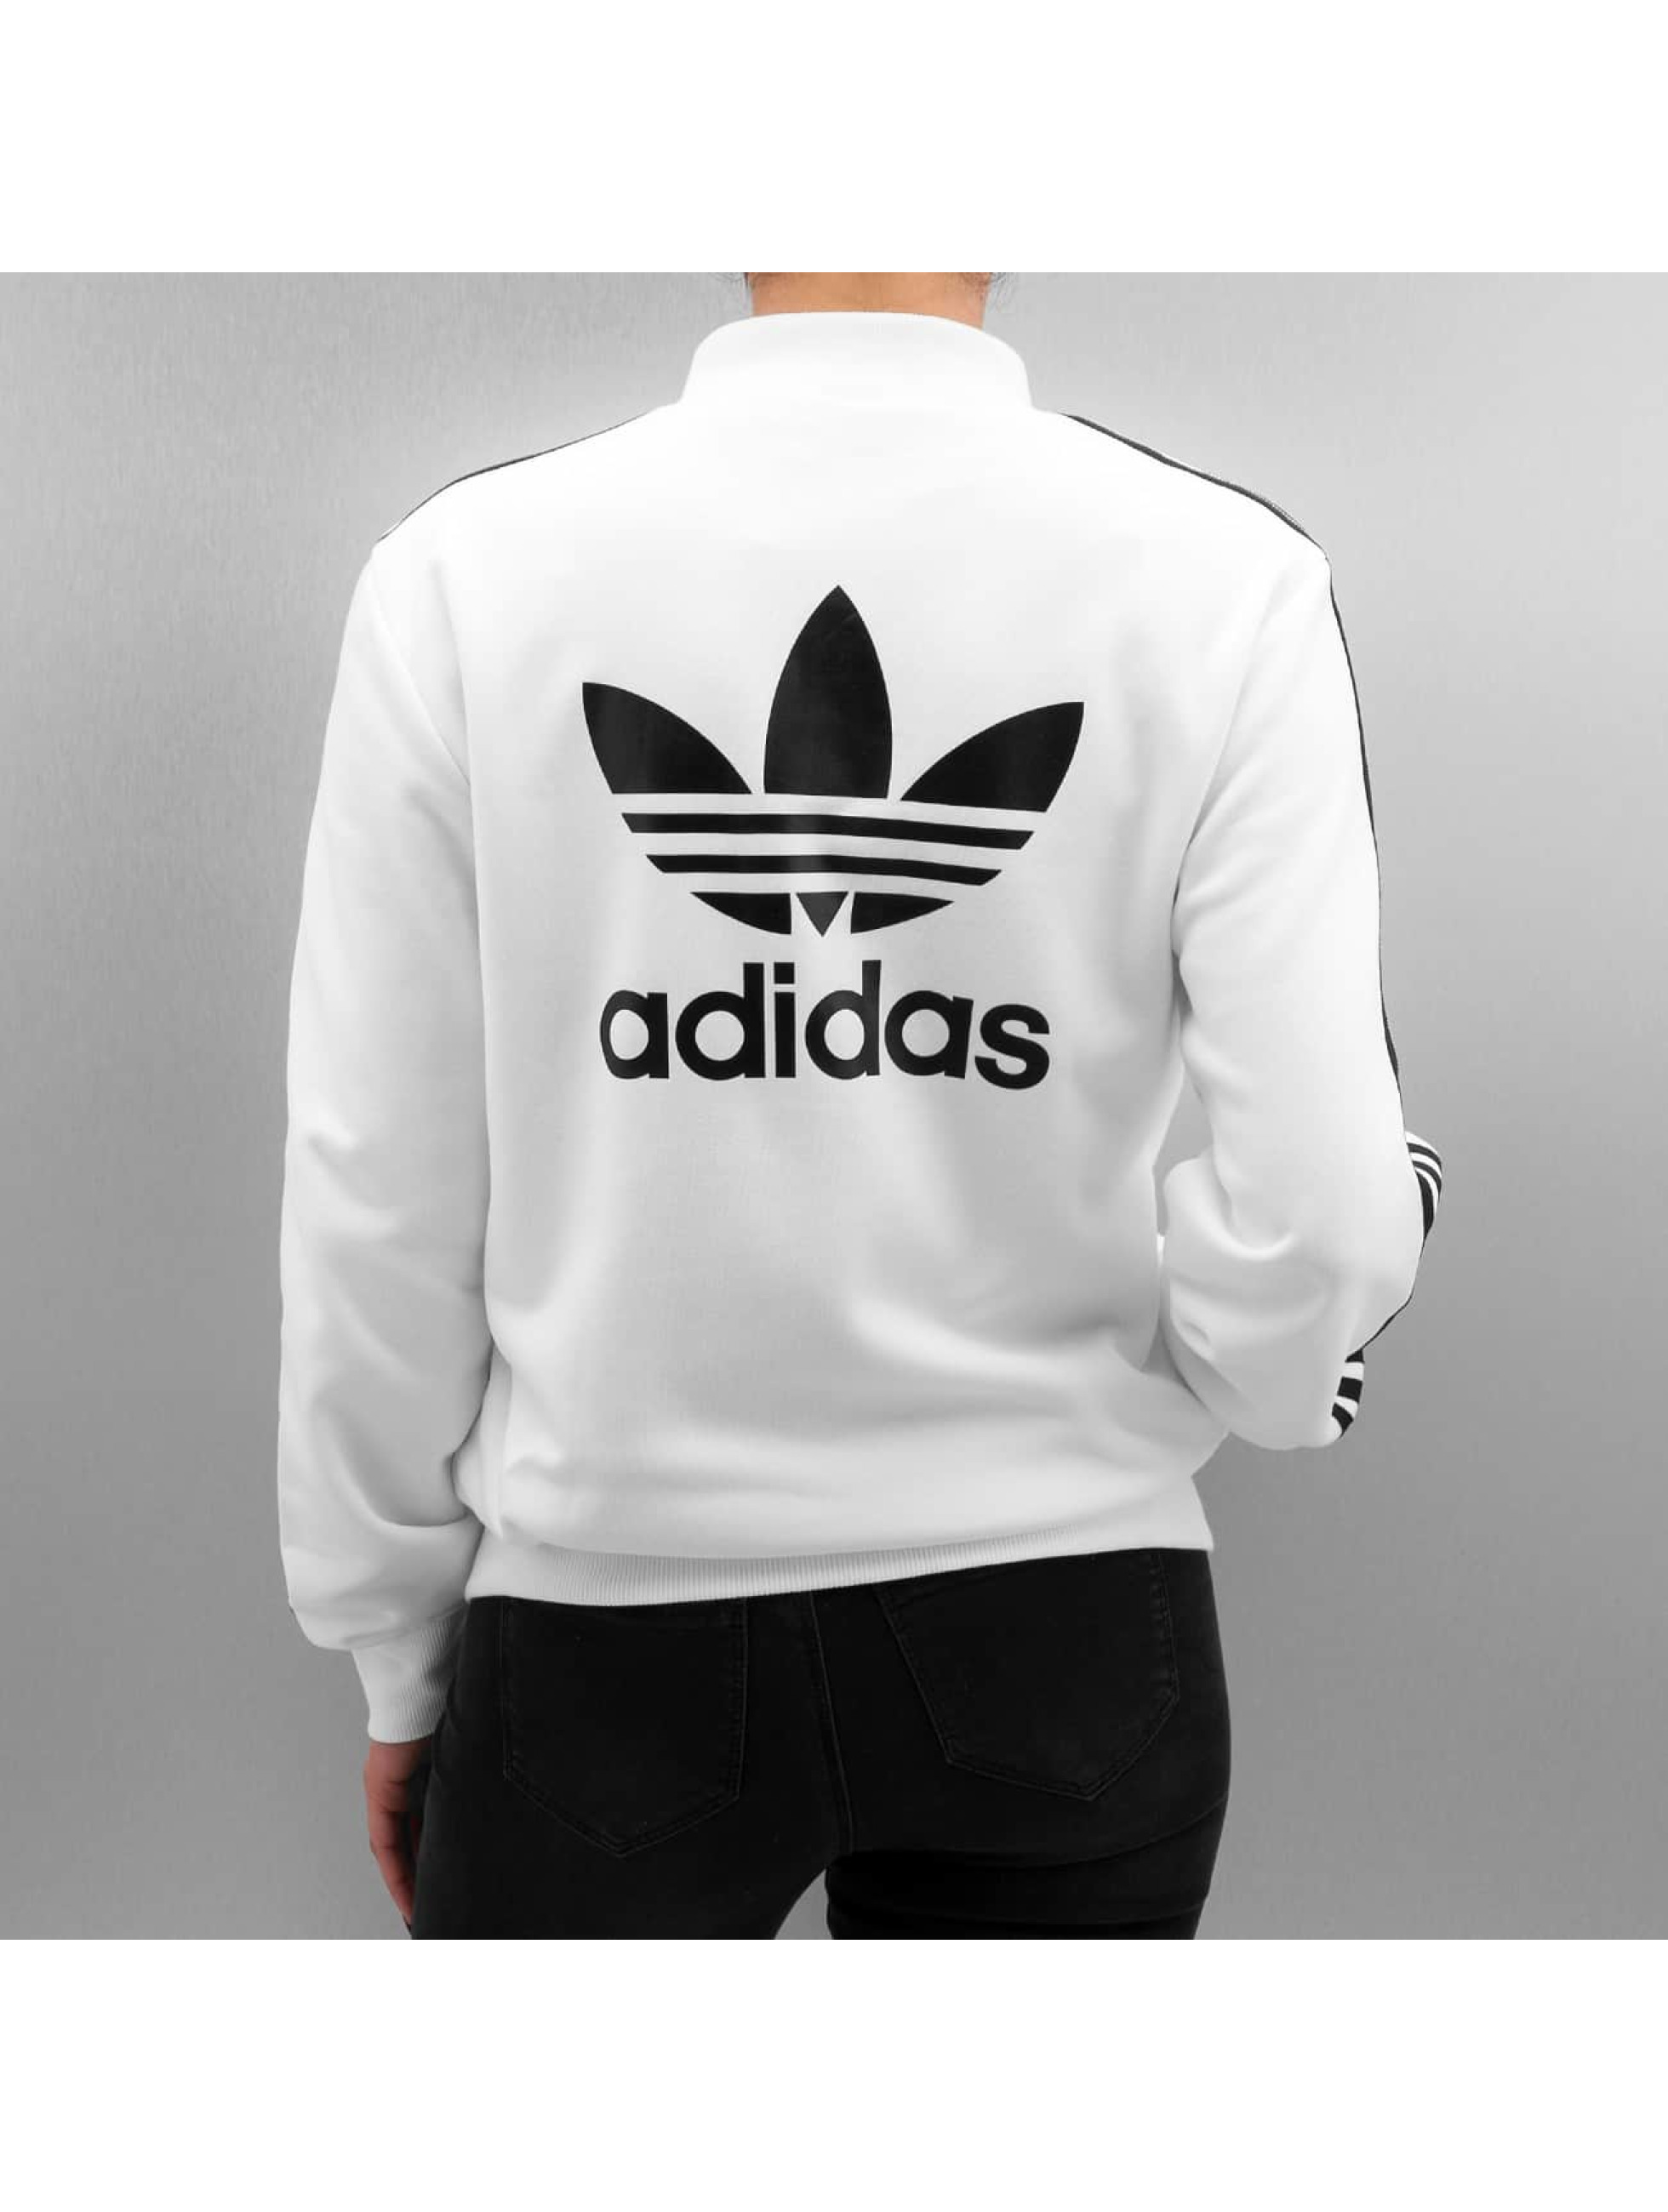 adidas 3 stripes blanc femme bomber adidas acheter pas cher manteau veste 302593. Black Bedroom Furniture Sets. Home Design Ideas